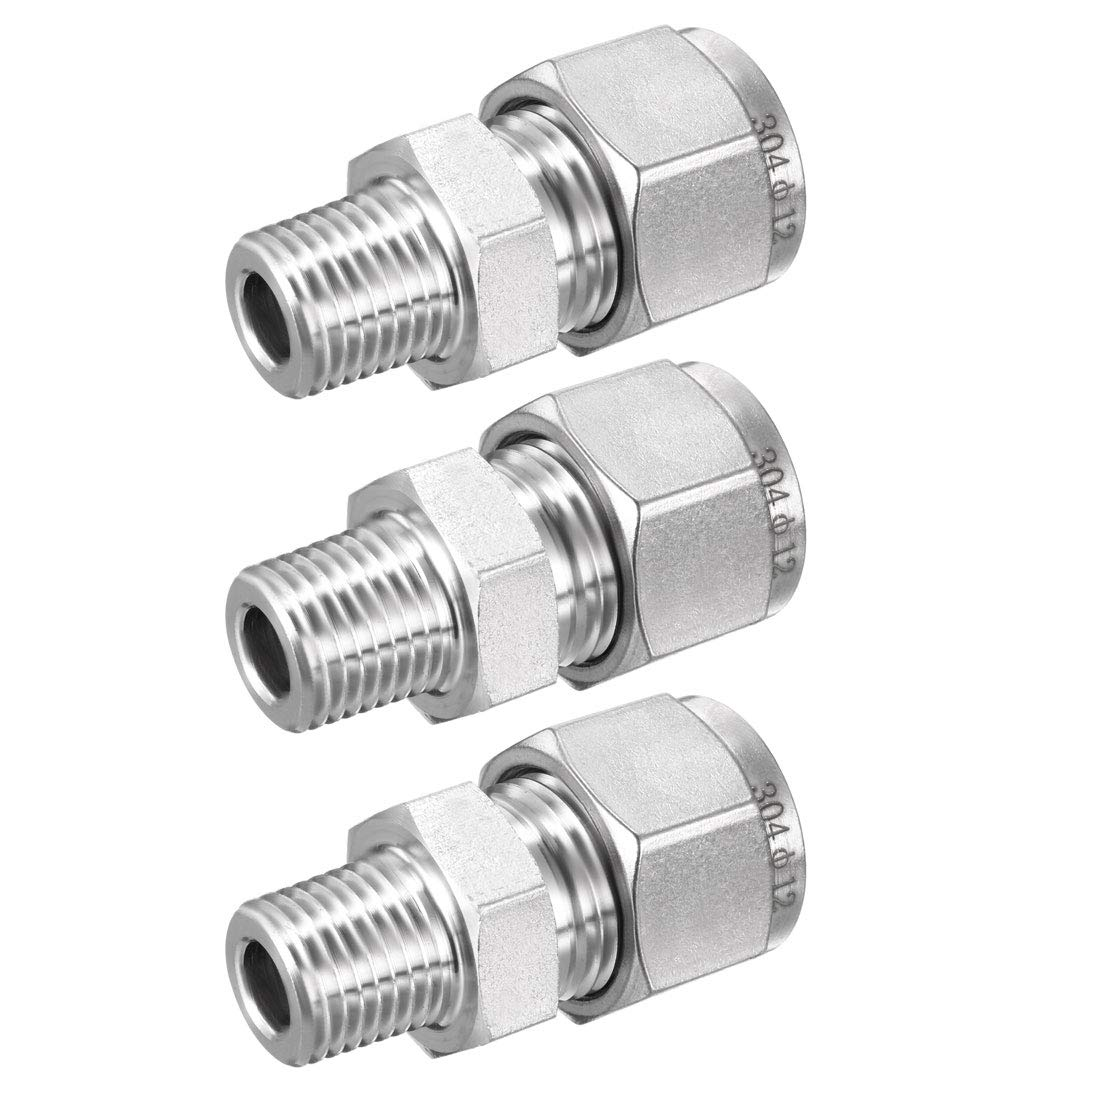 uxcell Stainless Steel Compression Tube Fitting 3//8-inch NPT Male x Ф12 Tube OD